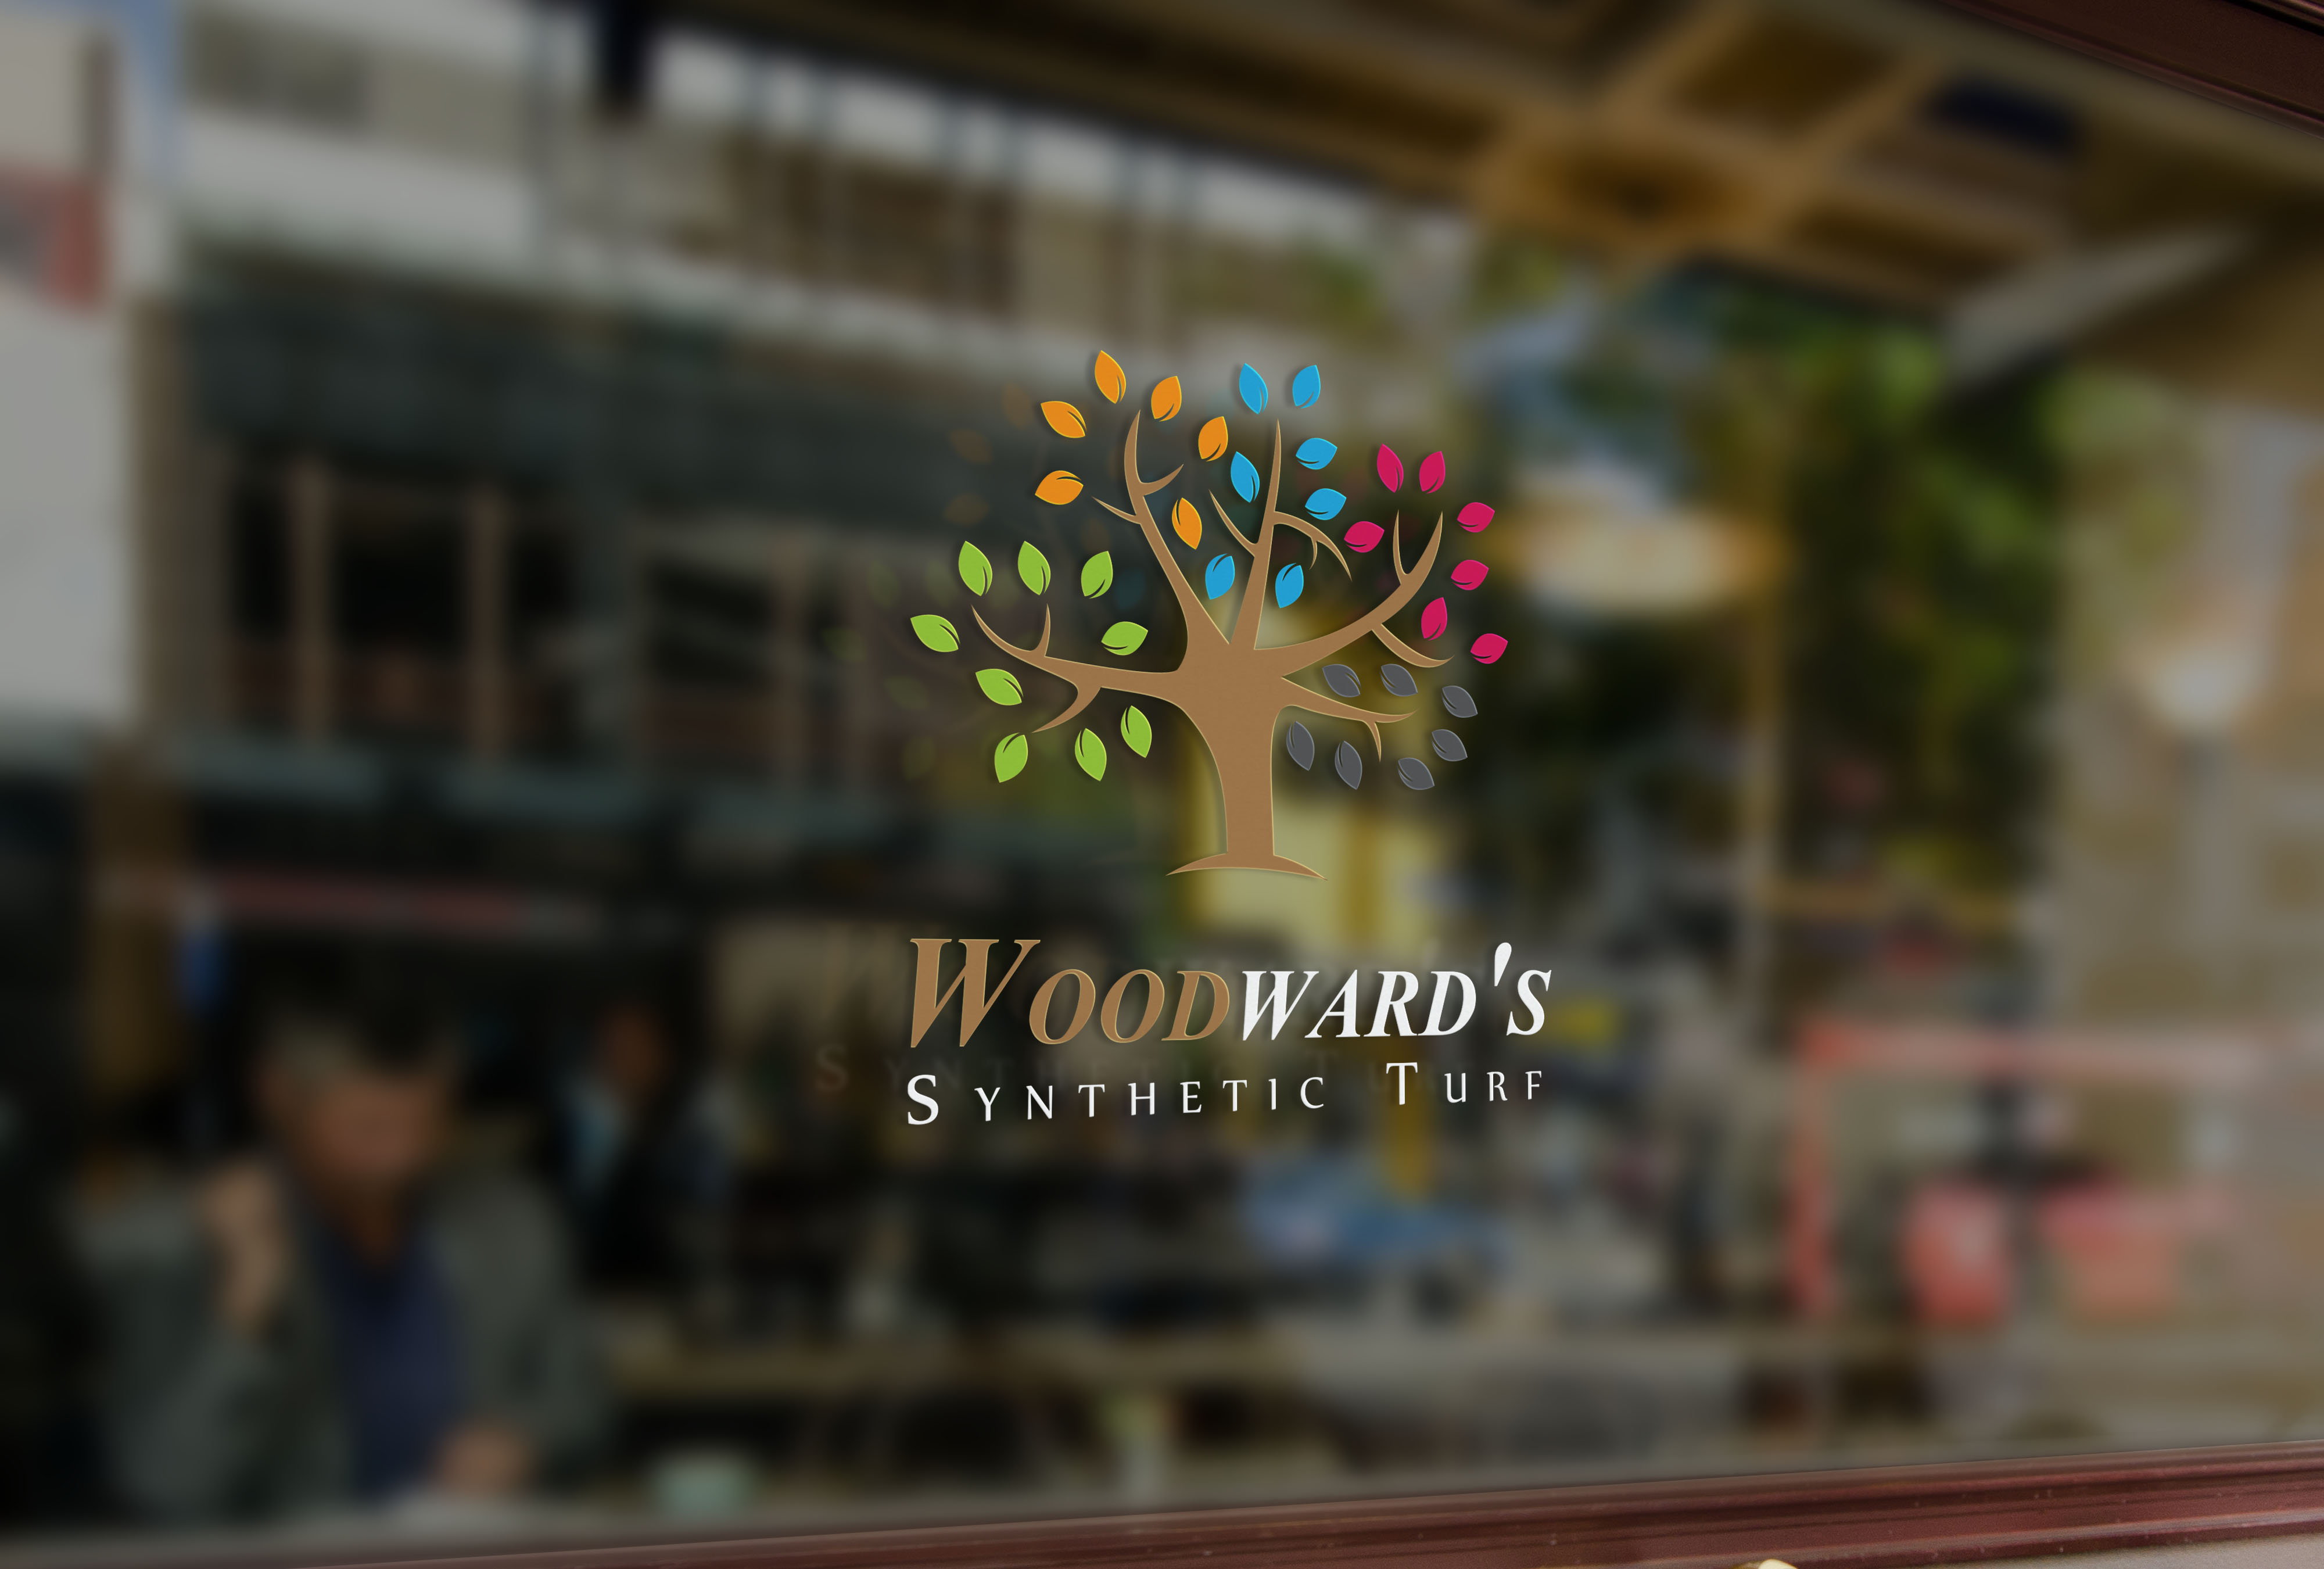 Logo Design by Muazzama Memon - Entry No. 50 in the Logo Design Contest Artistic Logo Design for Woodward's Synthetic Turf.